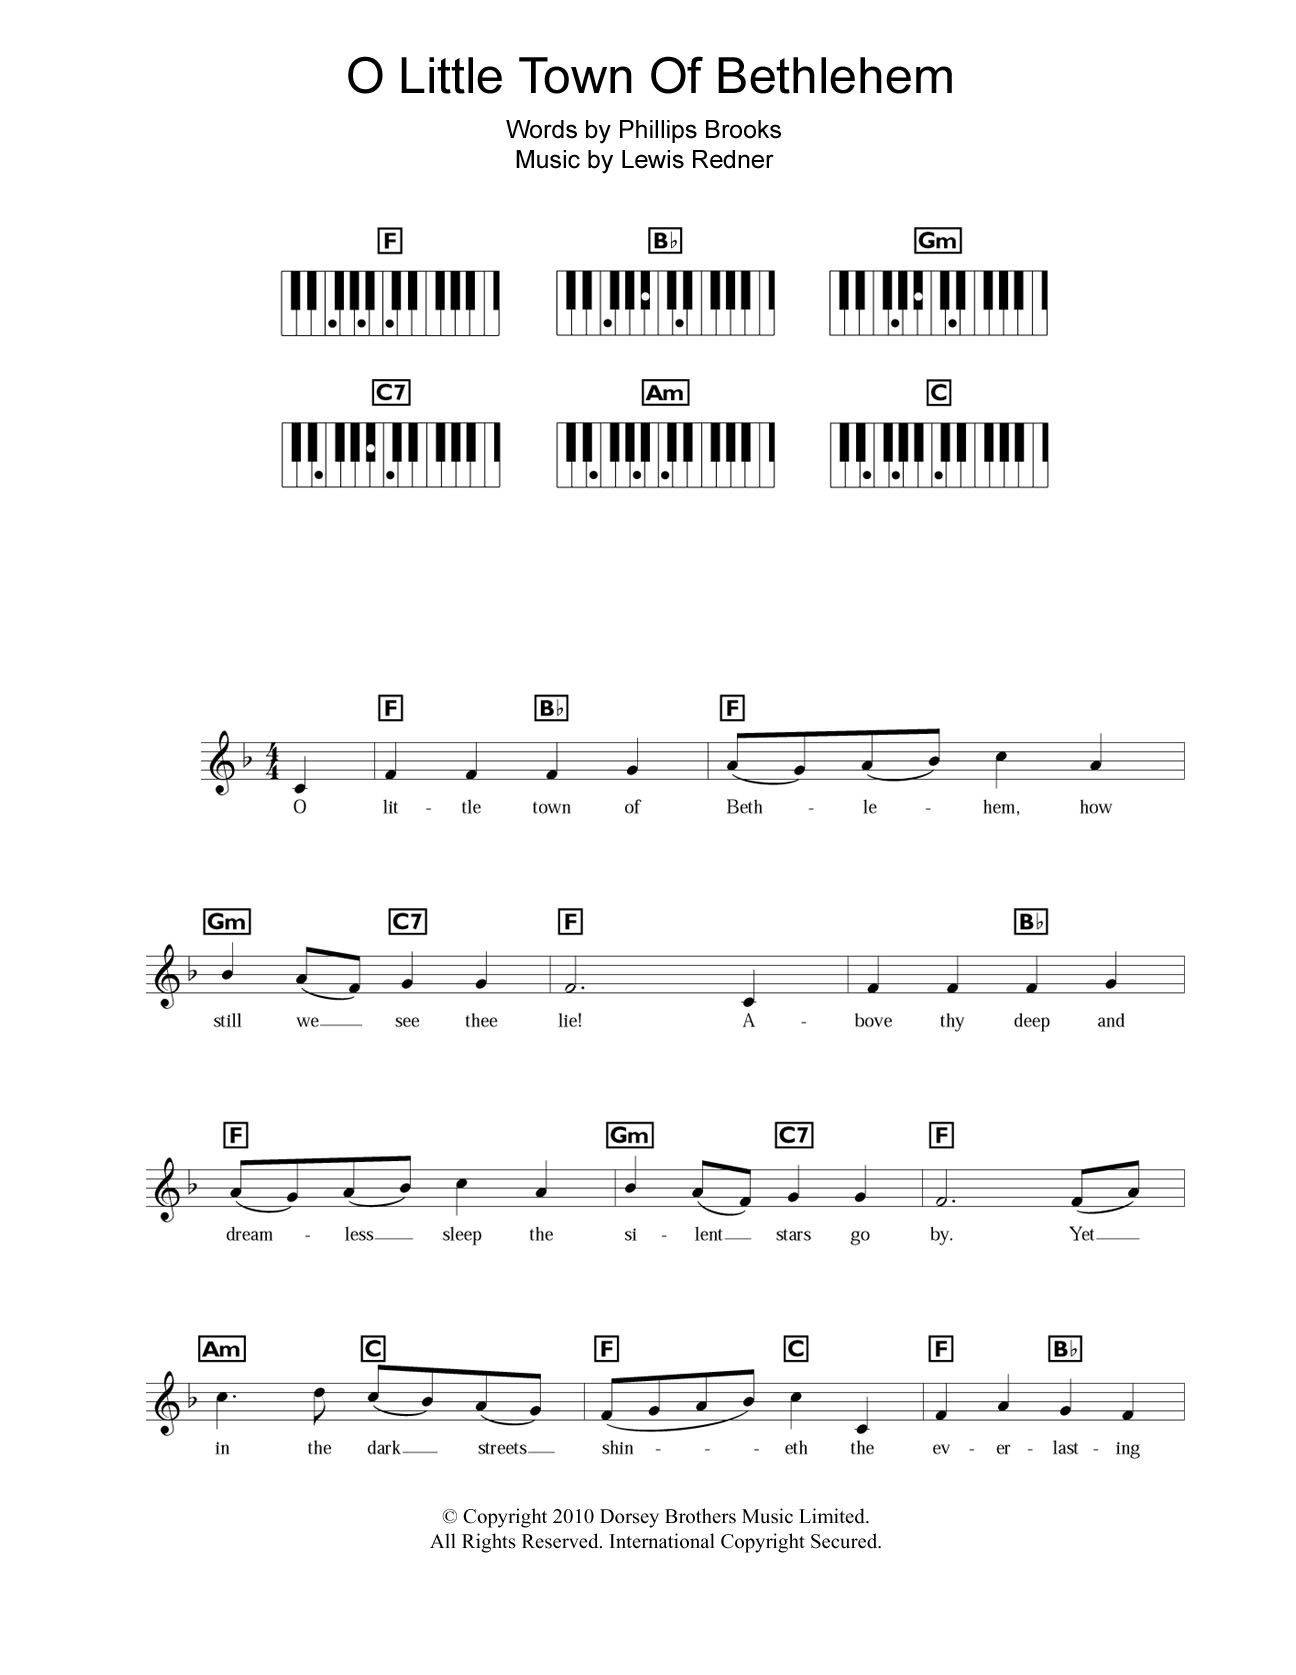 Magnificent Oh Little Town Of Bethlehem Guitar Chords Pictures